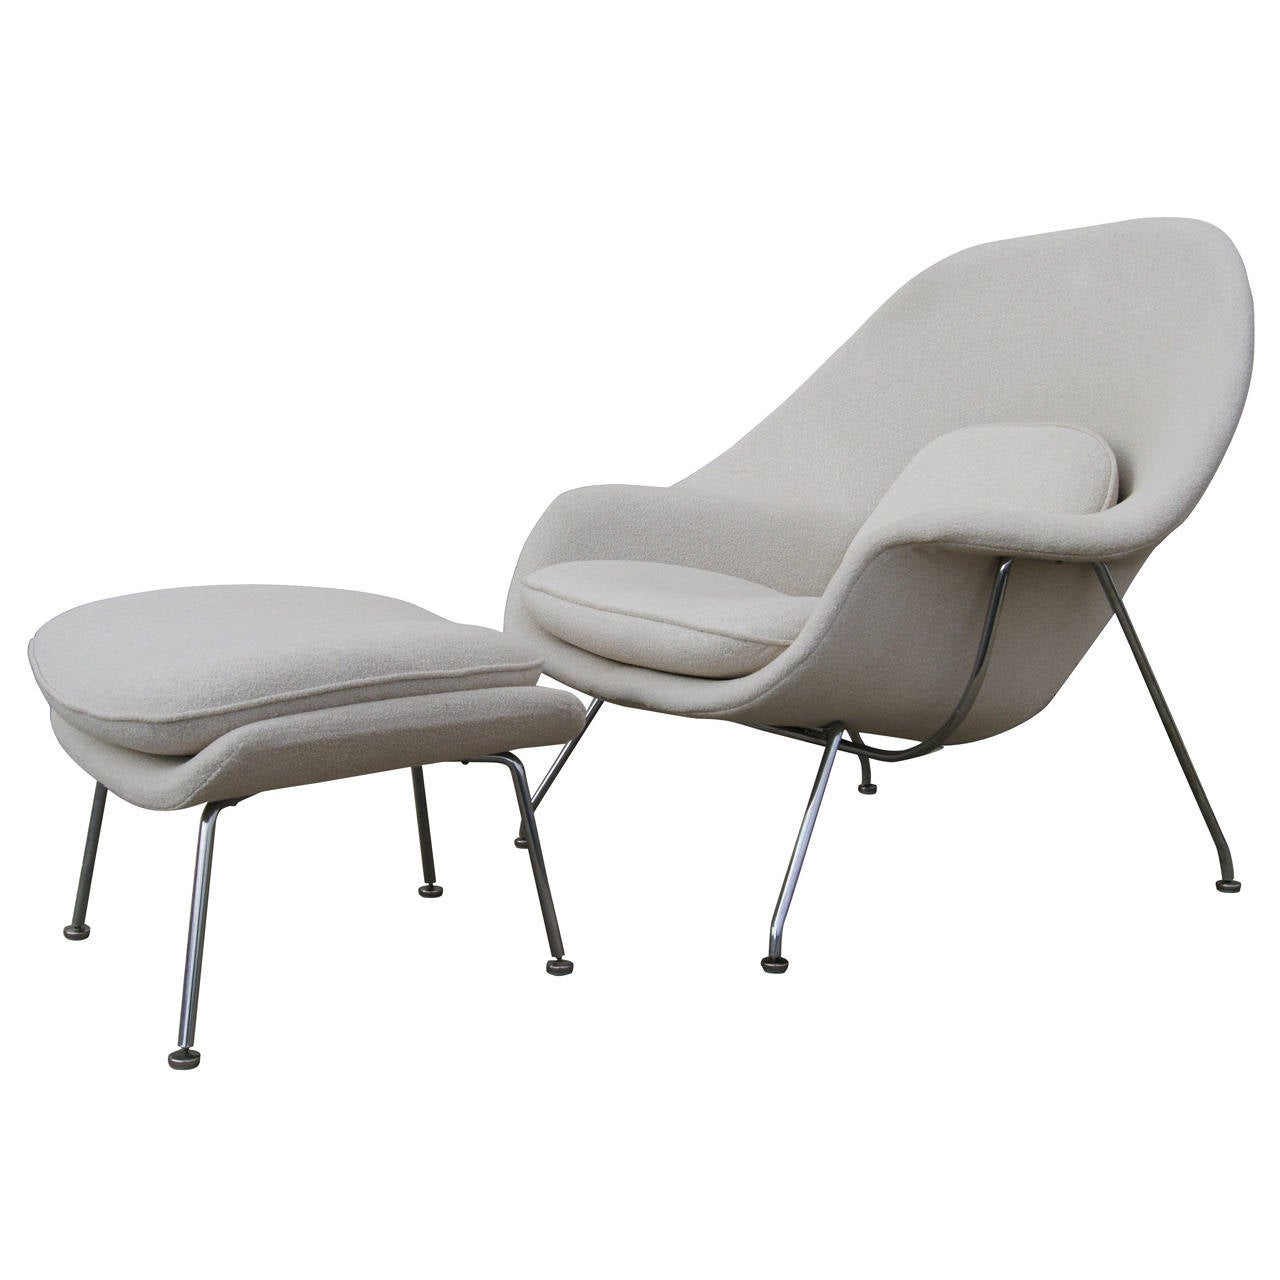 Womb Chair And Ottoman By Saarinen For Knoll At 1stdibs